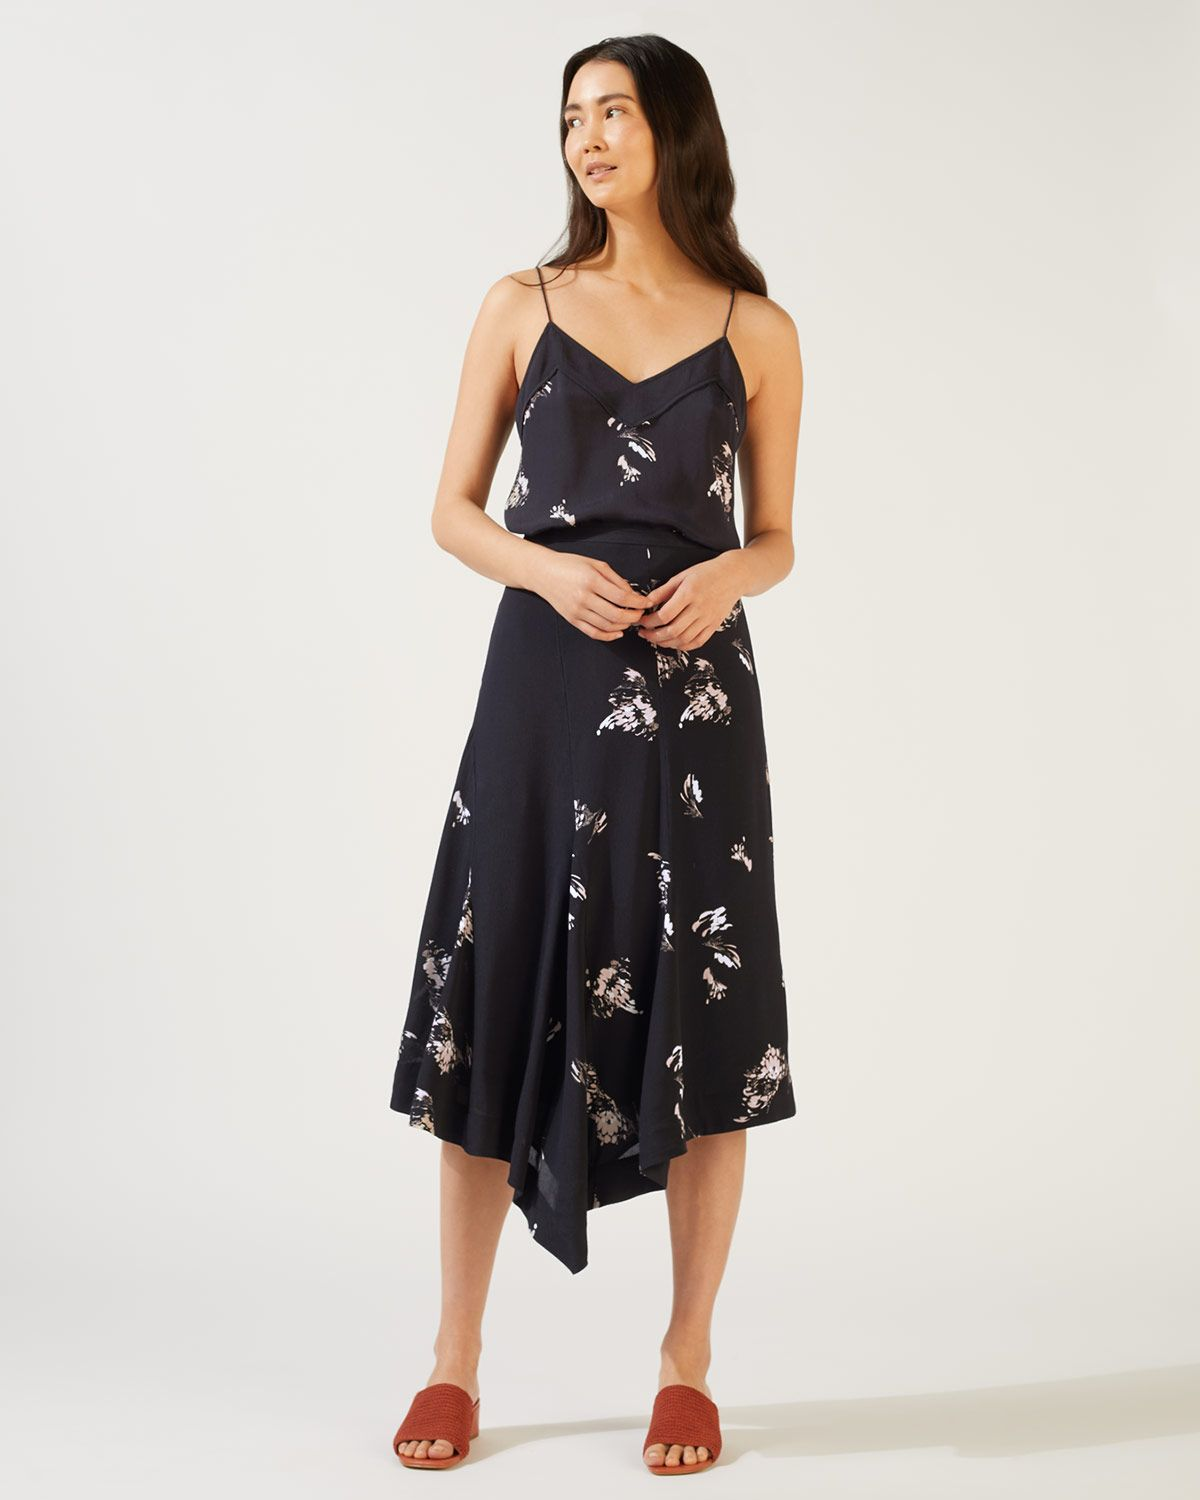 Petal Fragments Midi Skirt